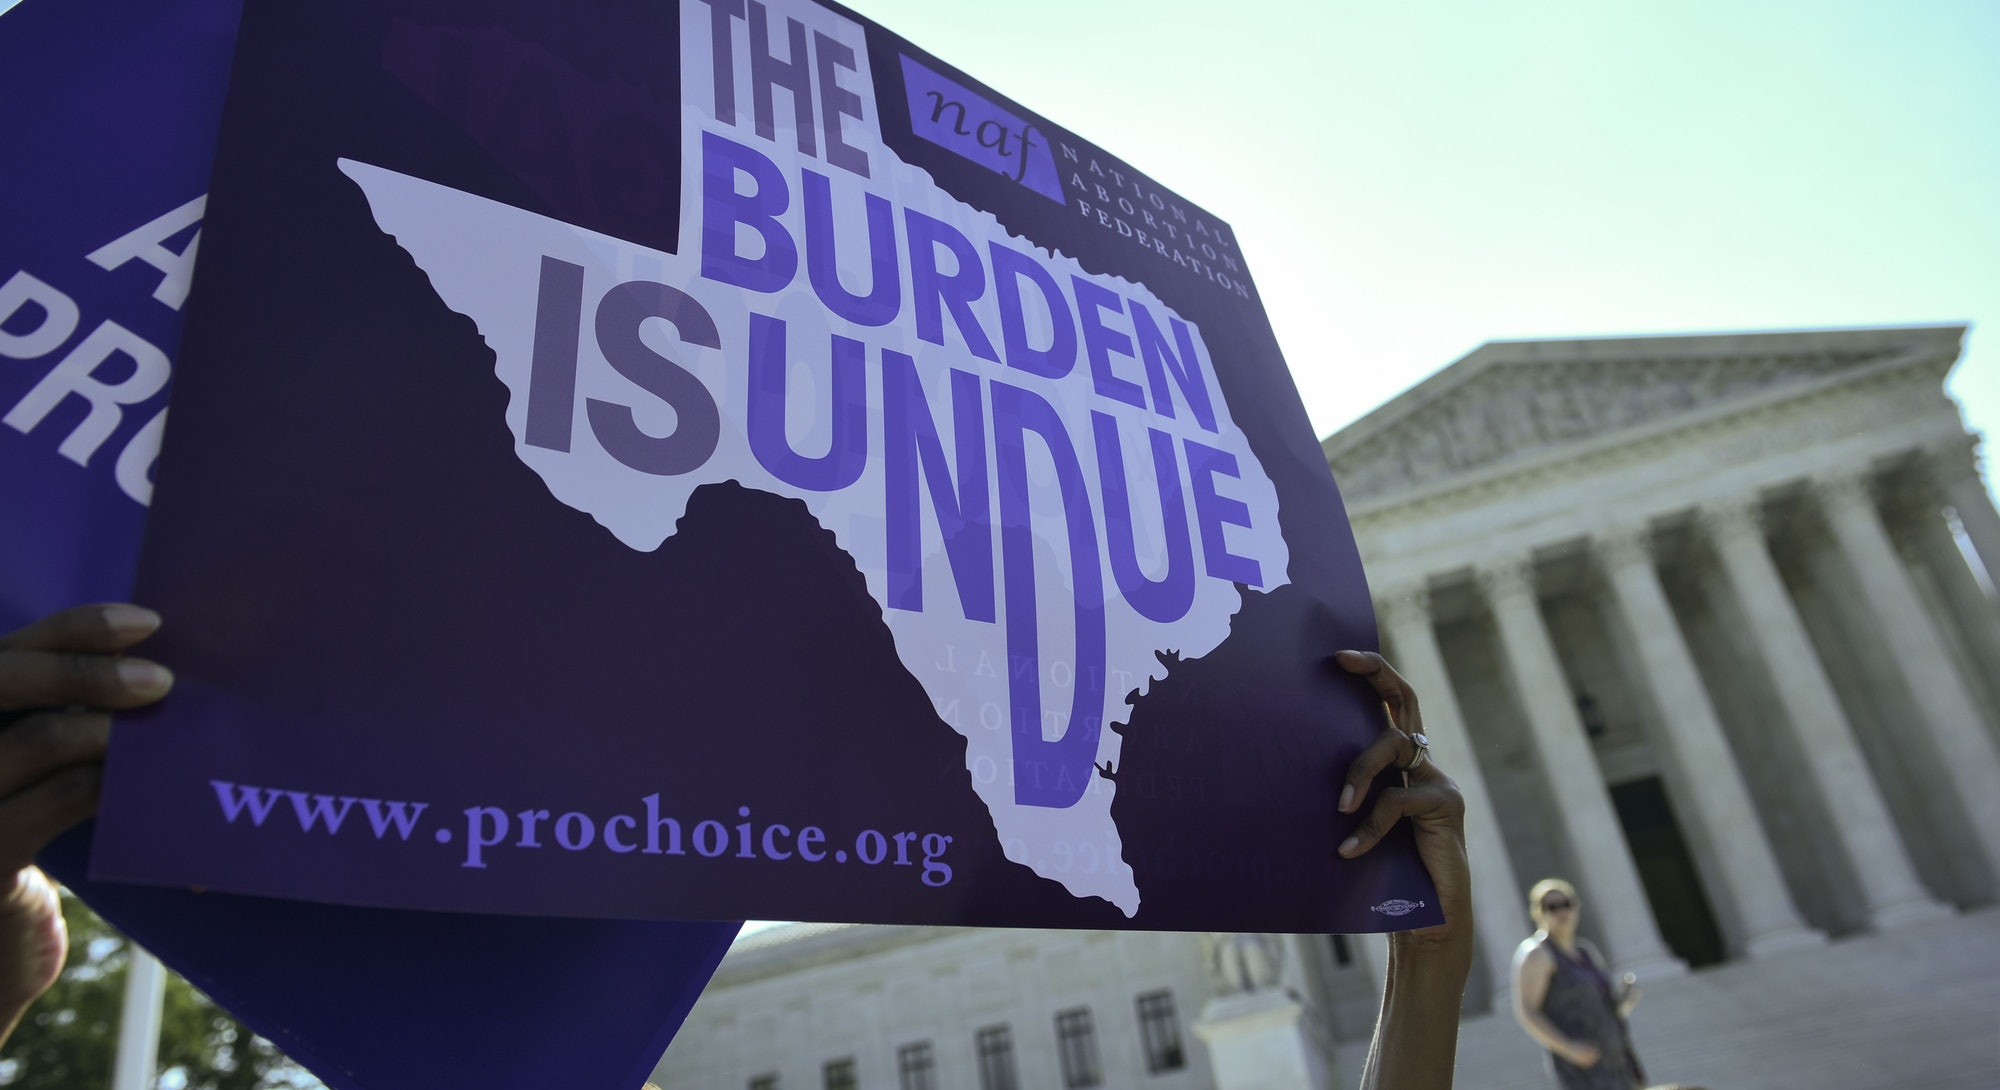 The U.S. Supreme Court didn't respond to an application to stop the new Texas abortion law, SB 8.